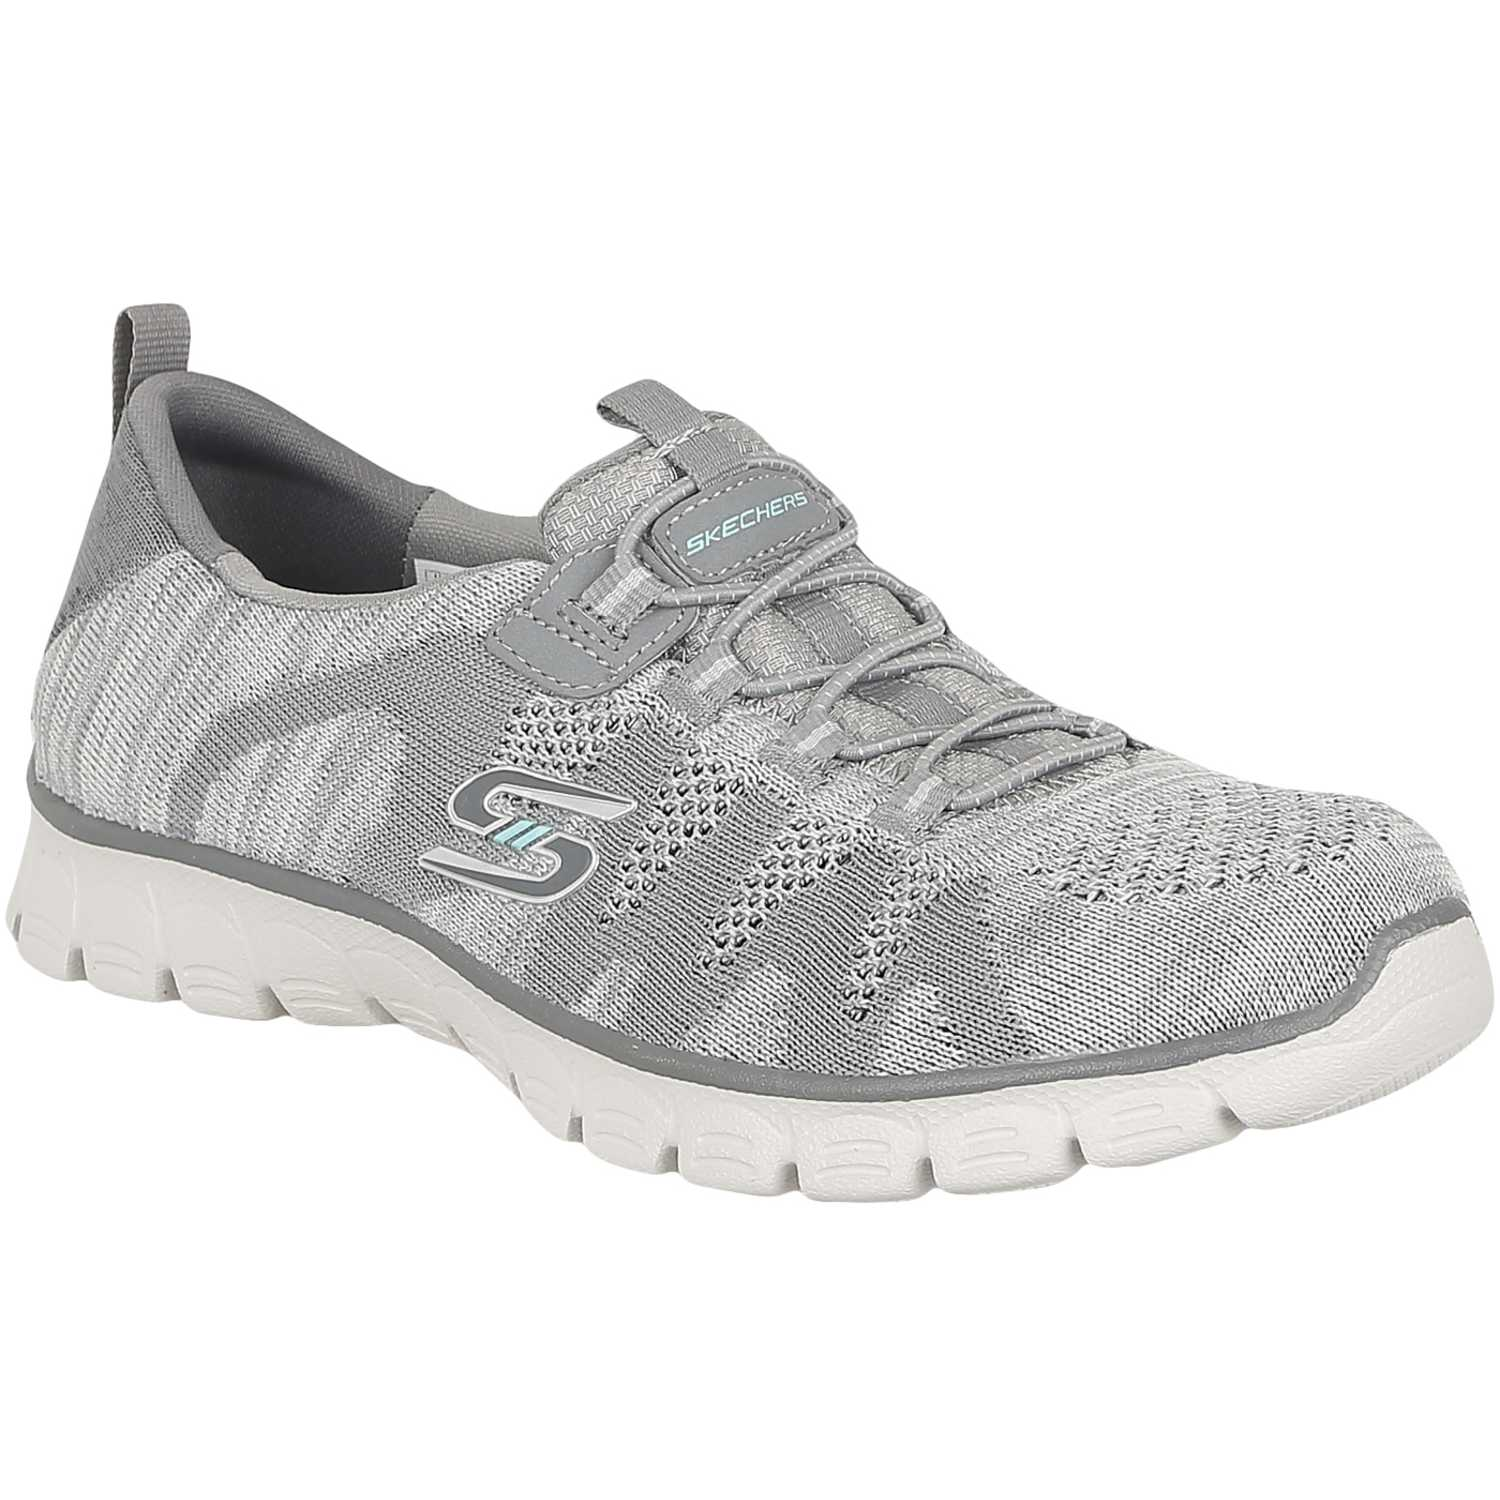 Zapatos grises casual Skechers para mujer 0x51o